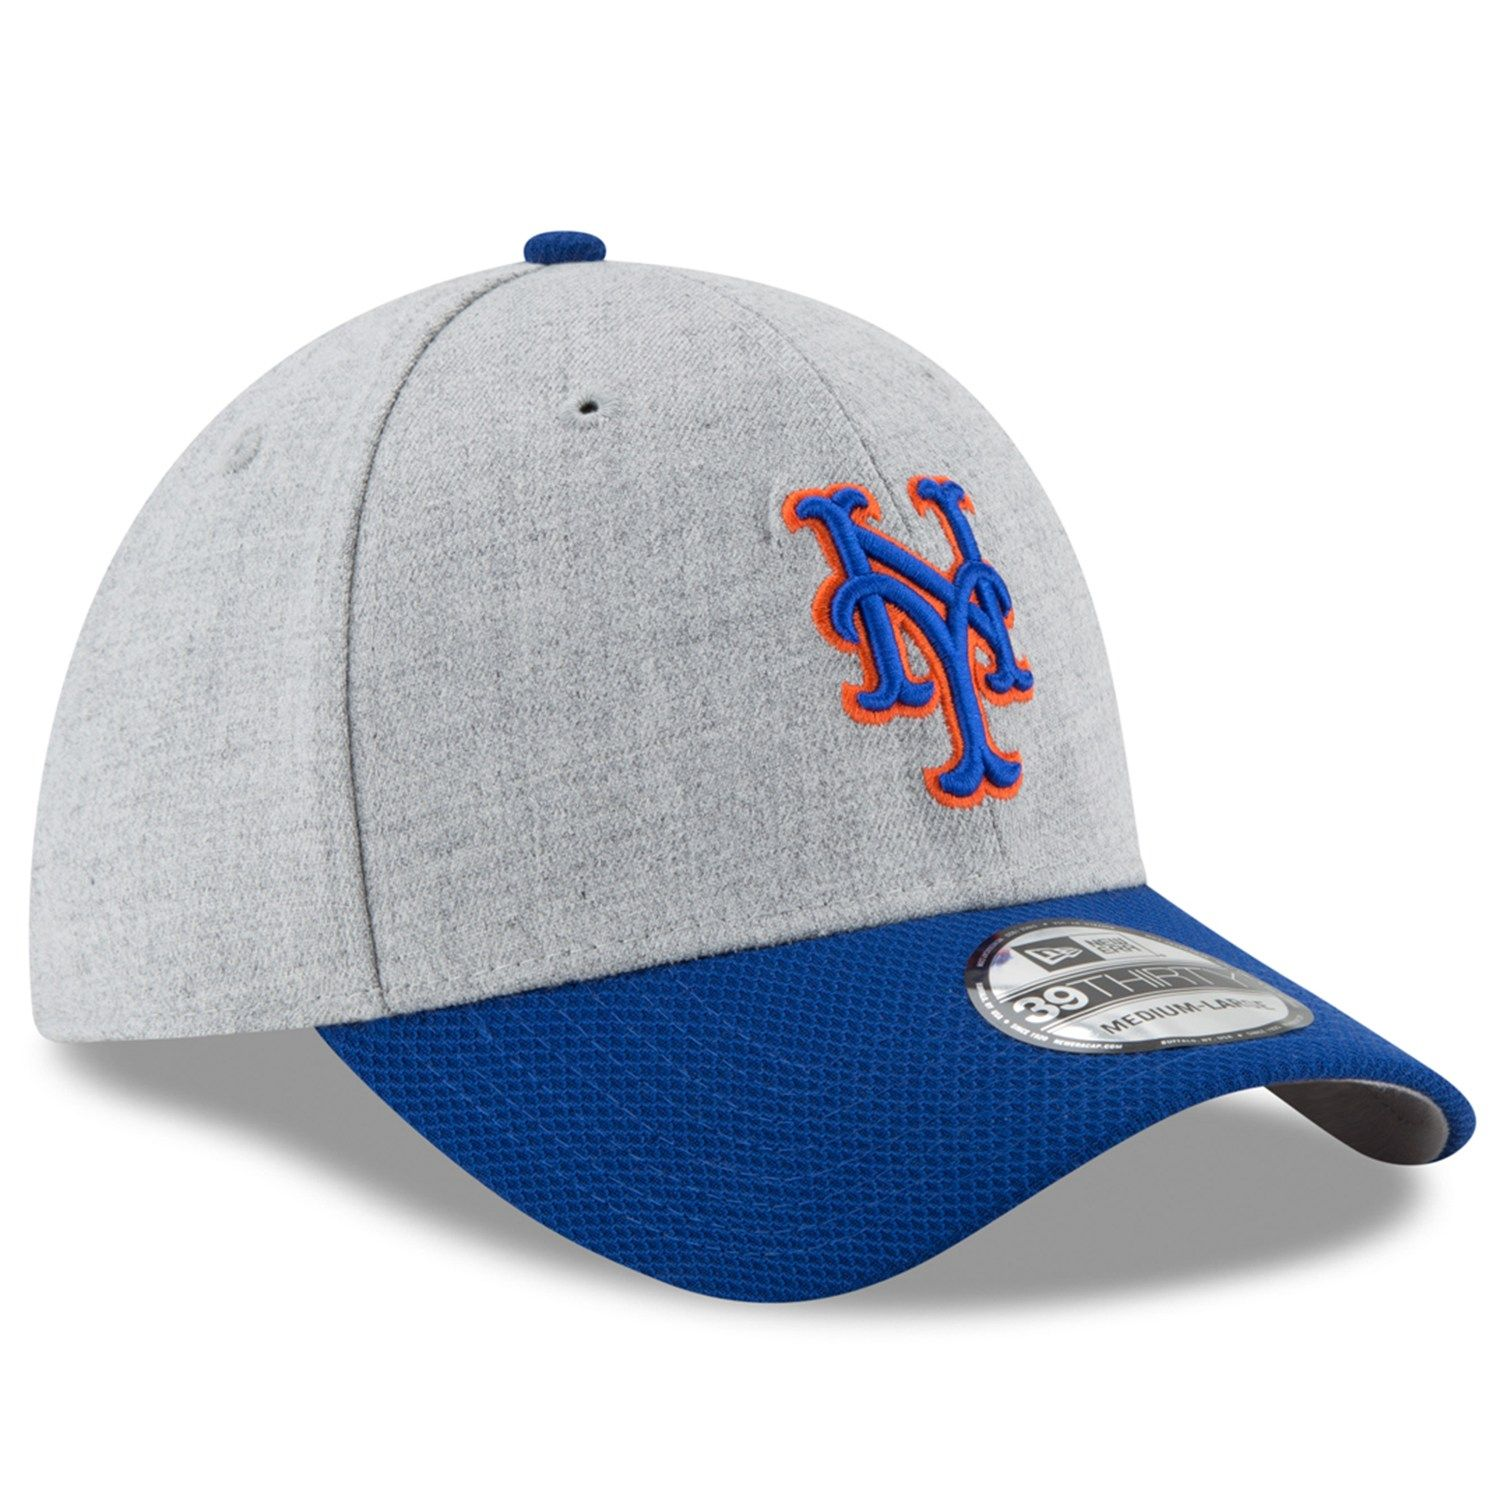 check out ea9bf 70644 Adult New Era New York Mets Change Up Redux 39THIRTY Fitted Cap  York,